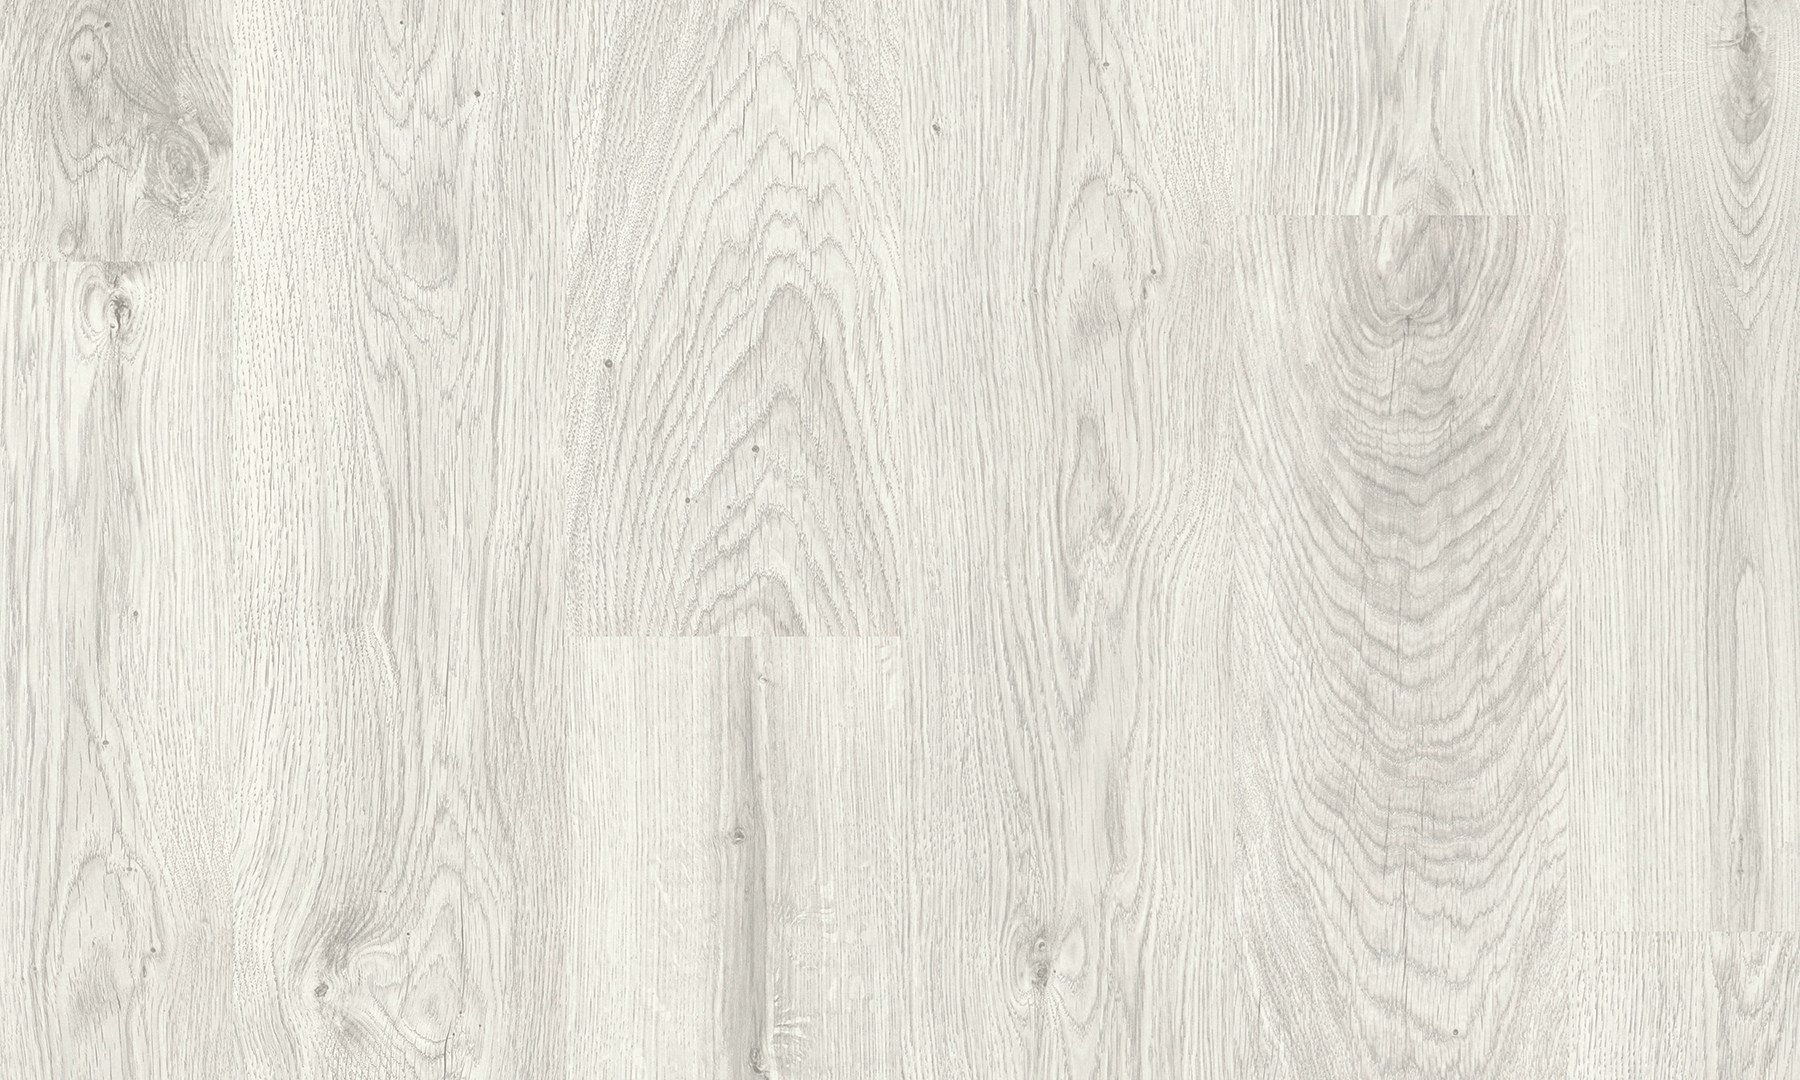 laminate flooring silver oak by pergo. Black Bedroom Furniture Sets. Home Design Ideas